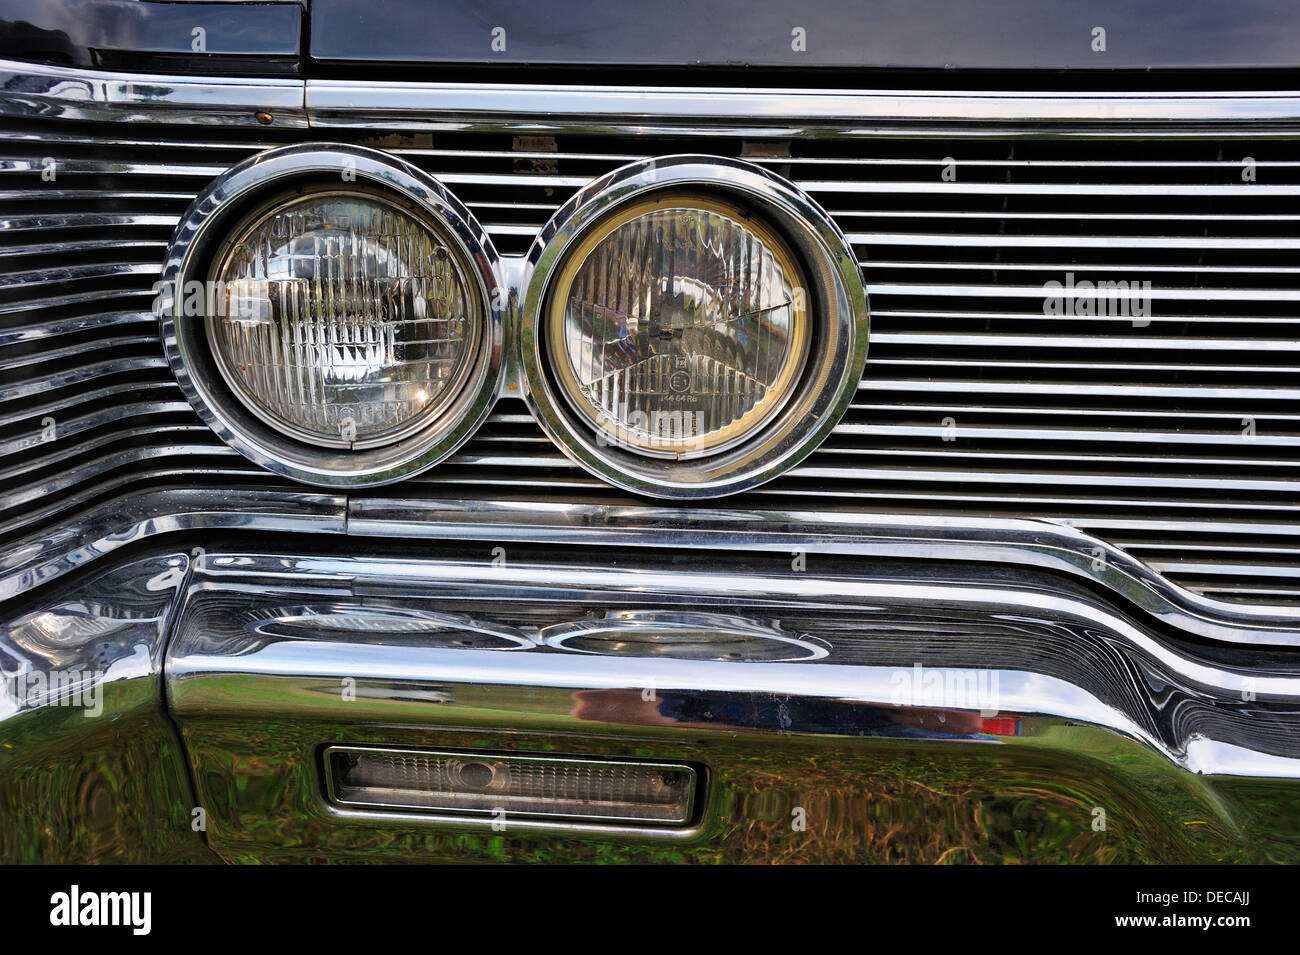 Close up of the radiator grille and headlights of an American car from the 1950s, isolated on white - Stock Image